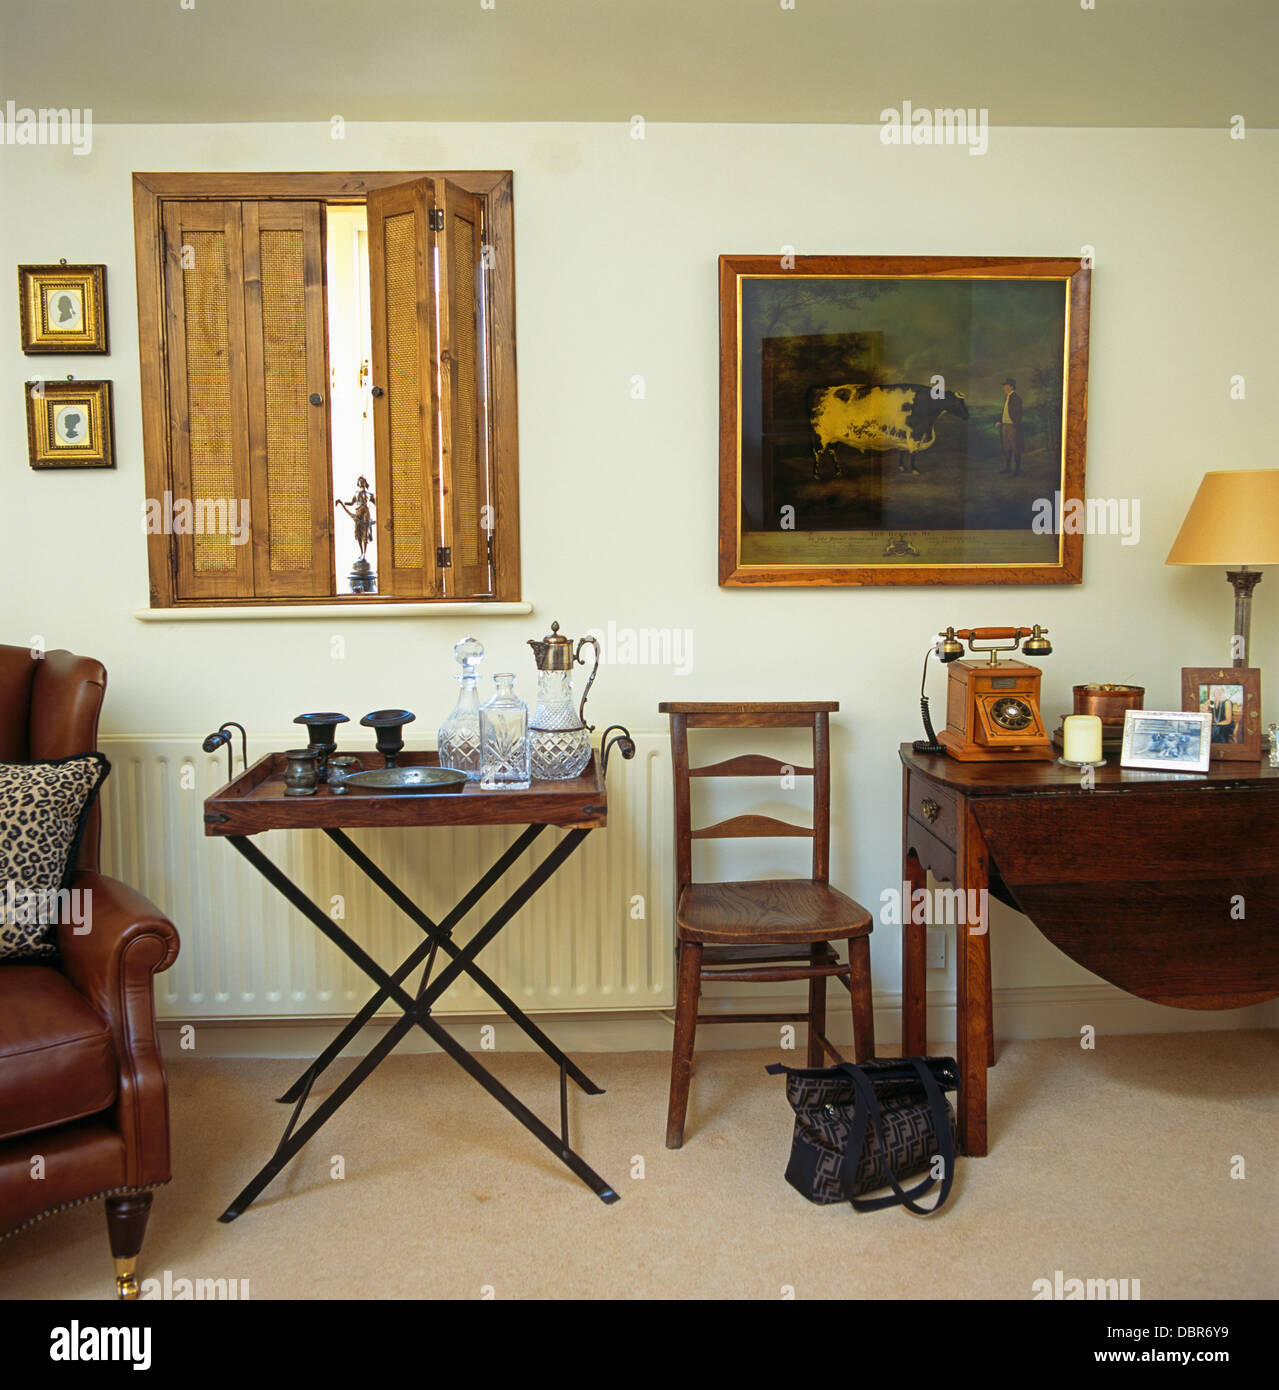 Superior Wooden Shutters Above Tray Table In Living Room With Ladder Back Chair And  Antique Table With Retro Telephone